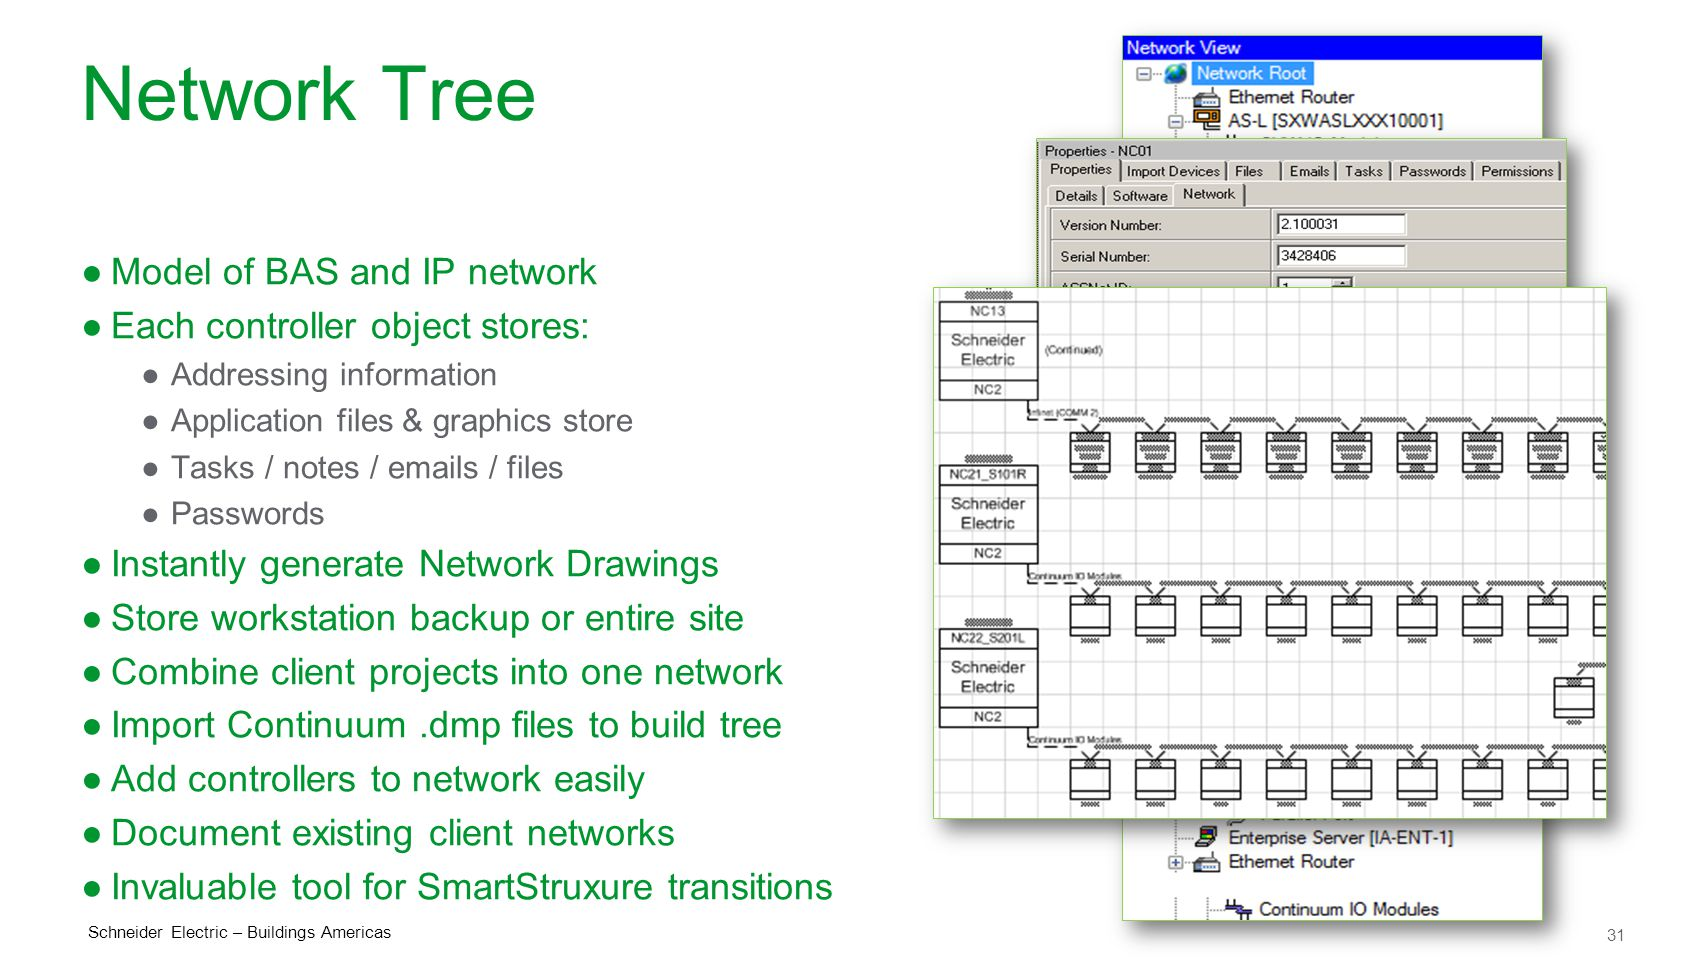 31 Schneider Electric – Buildings Americas Network Tree ●Model of BAS and IP network ●Each controller object stores: ●Addressing information ●Application files & graphics store ●Tasks / notes / emails / files ●Passwords ●Instantly generate Network Drawings ●Store workstation backup or entire site ●Combine client projects into one network ●Import Continuum.dmp files to build tree ●Add controllers to network easily ●Document existing client networks ●Invaluable tool for SmartStruxure transitions